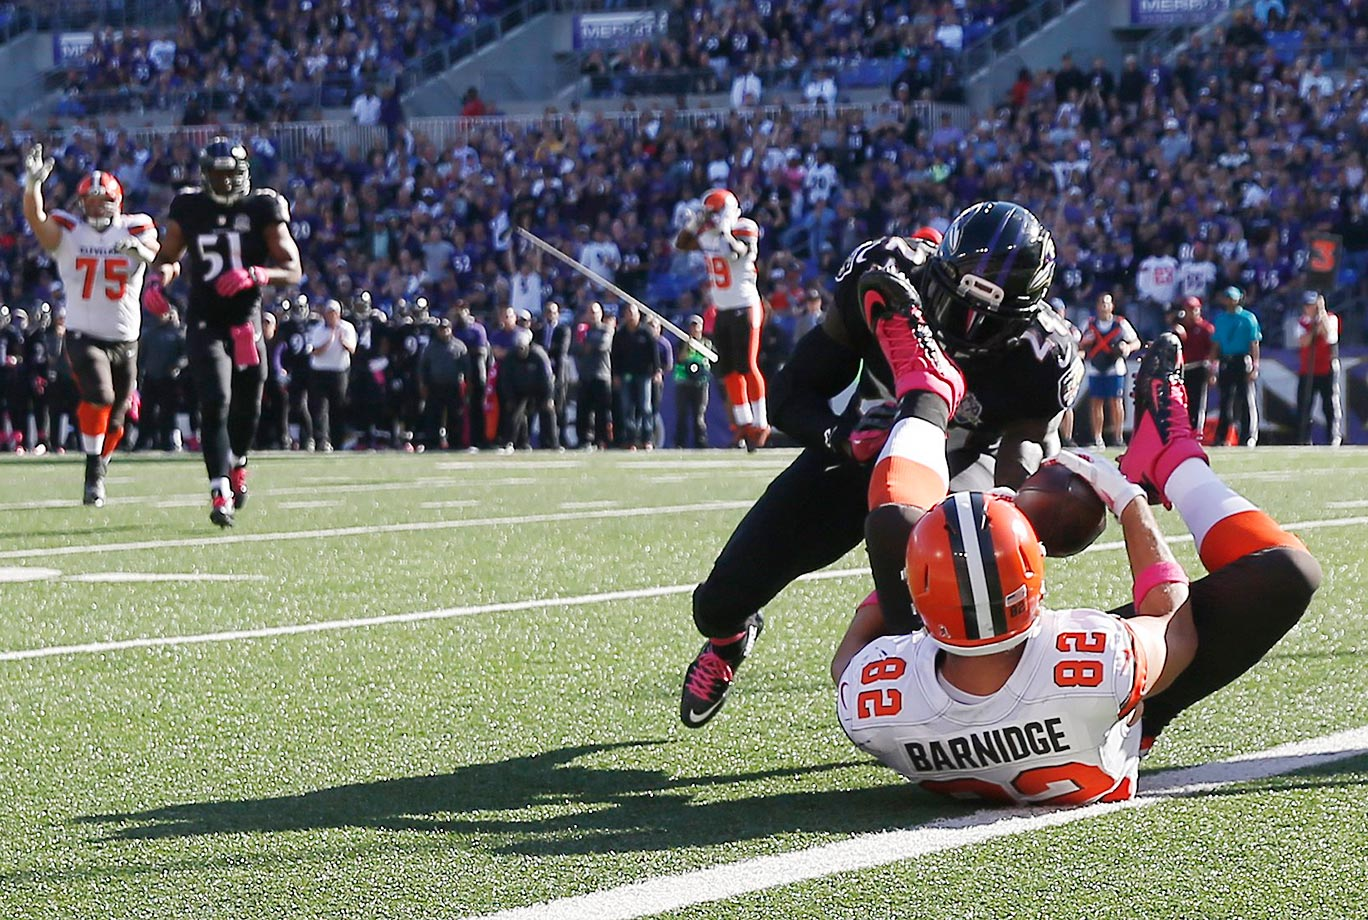 In SI.com's midseason report for the 2015 season, the play of the year honor was given to this unbelievable catch by Gary Barnidge, in which the Cleveland tight end secured an 18-yard touchdown pass with the use of his left ankle, calfs, knees and thighs, while lying prone on the ground.